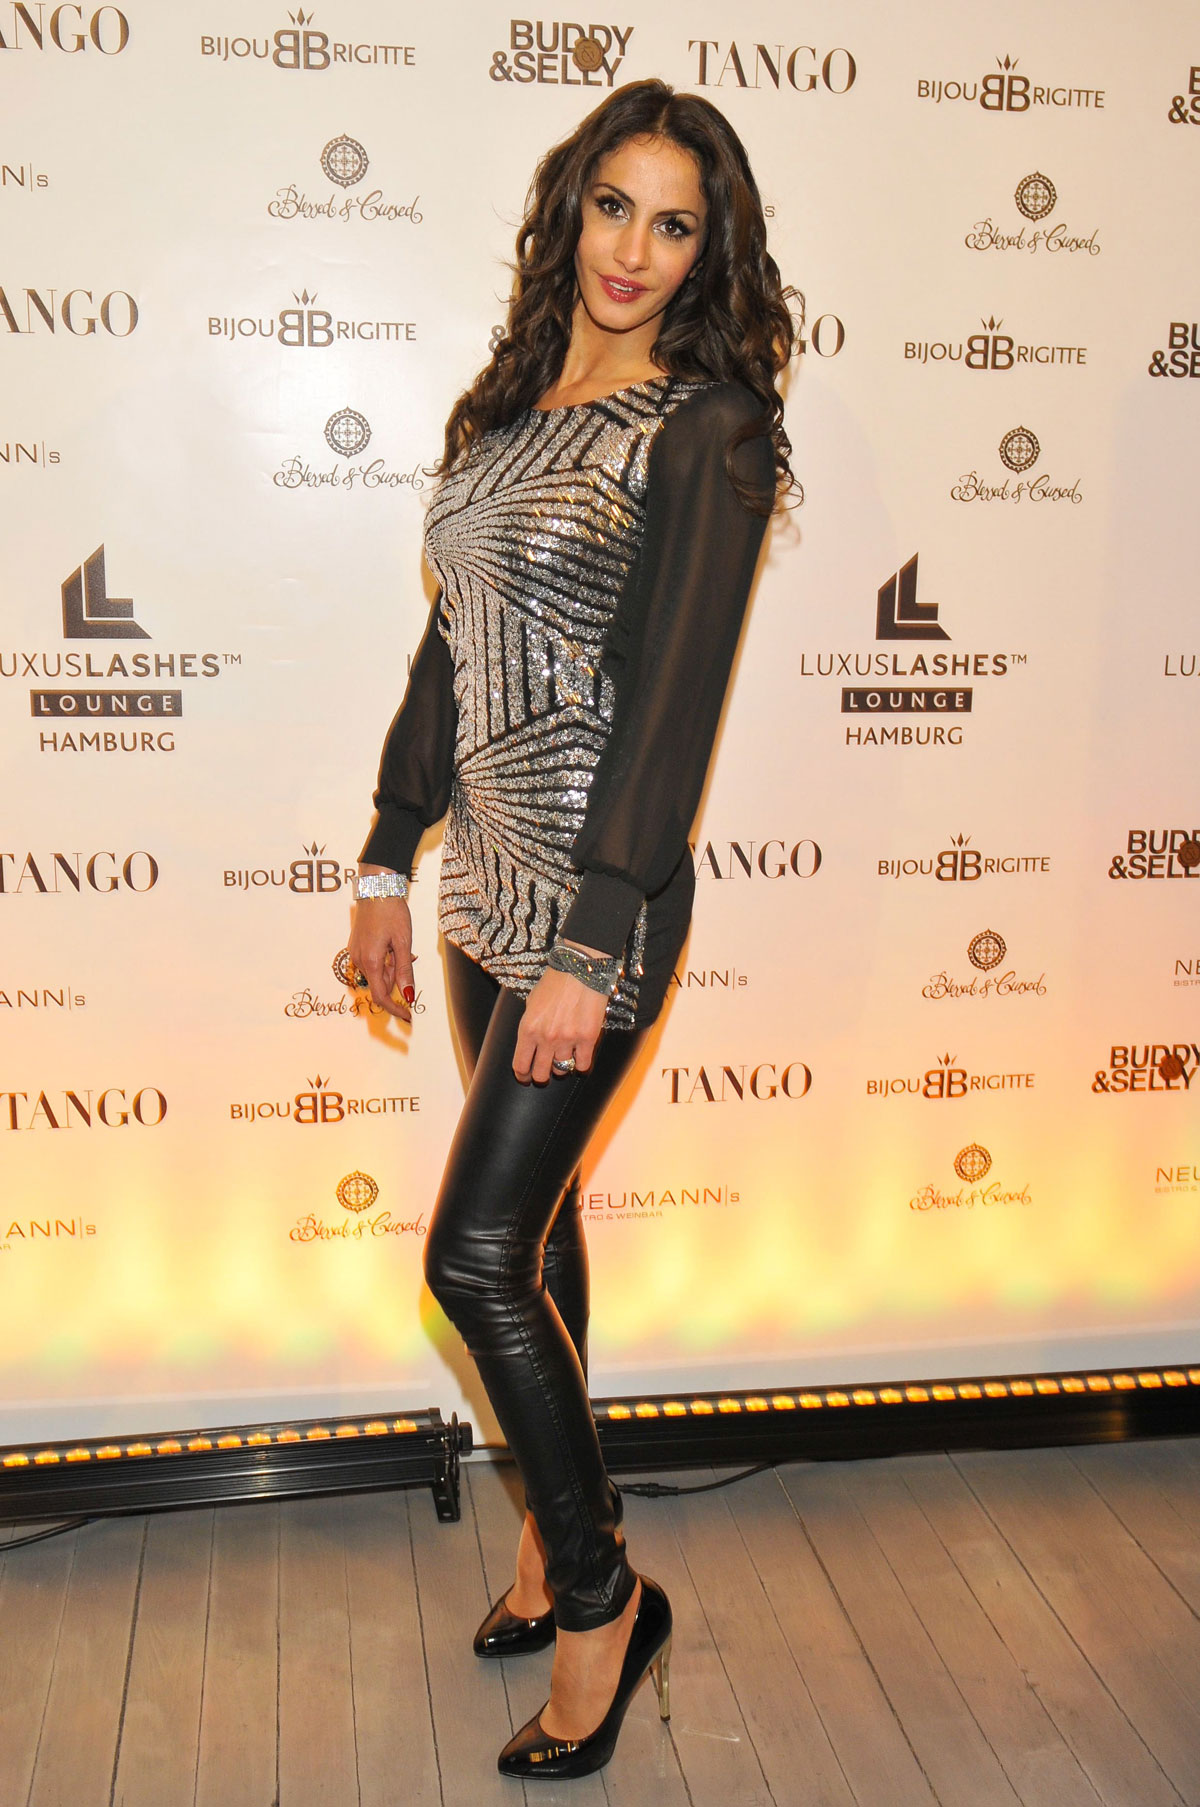 Janina Youssefian attends opening of the first LuxusLashes Lounge